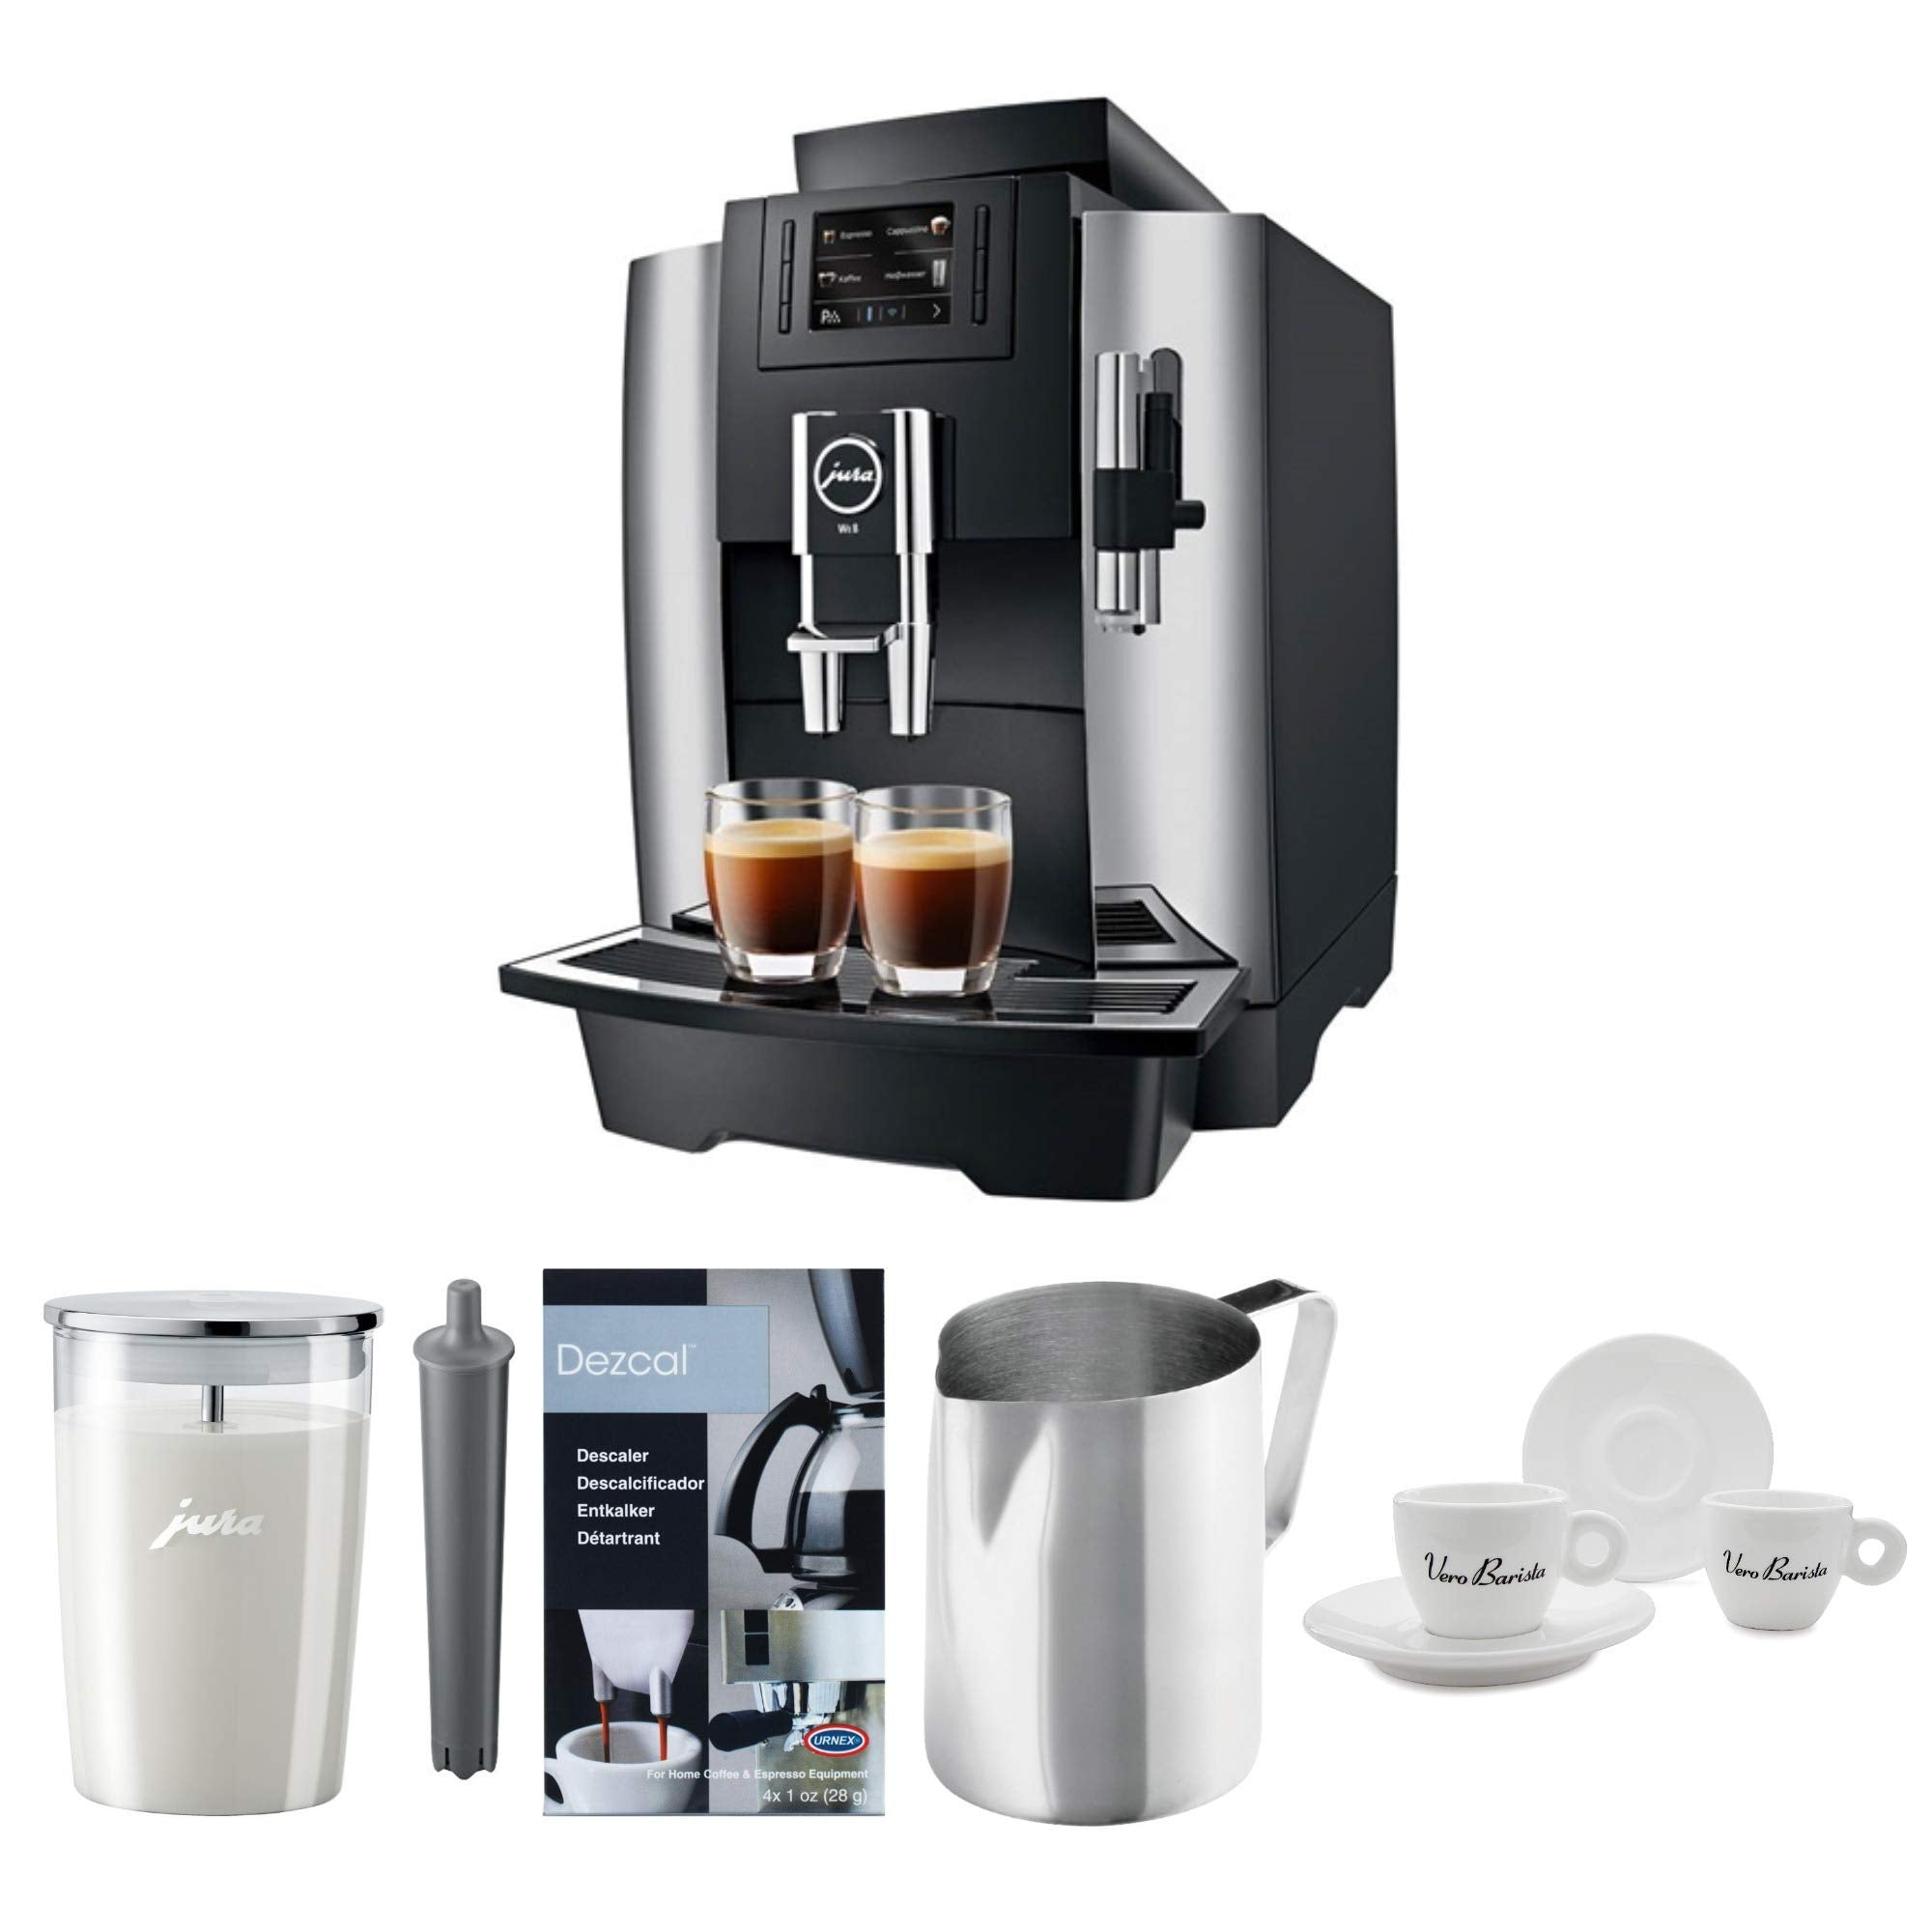 Jura 15145 Automatic Coffee Machine WE8, Chrome Includes Descaler, Smart Filter, Milk Container, Frother Pitcher and Espresso Cups Bundle (6 Items)